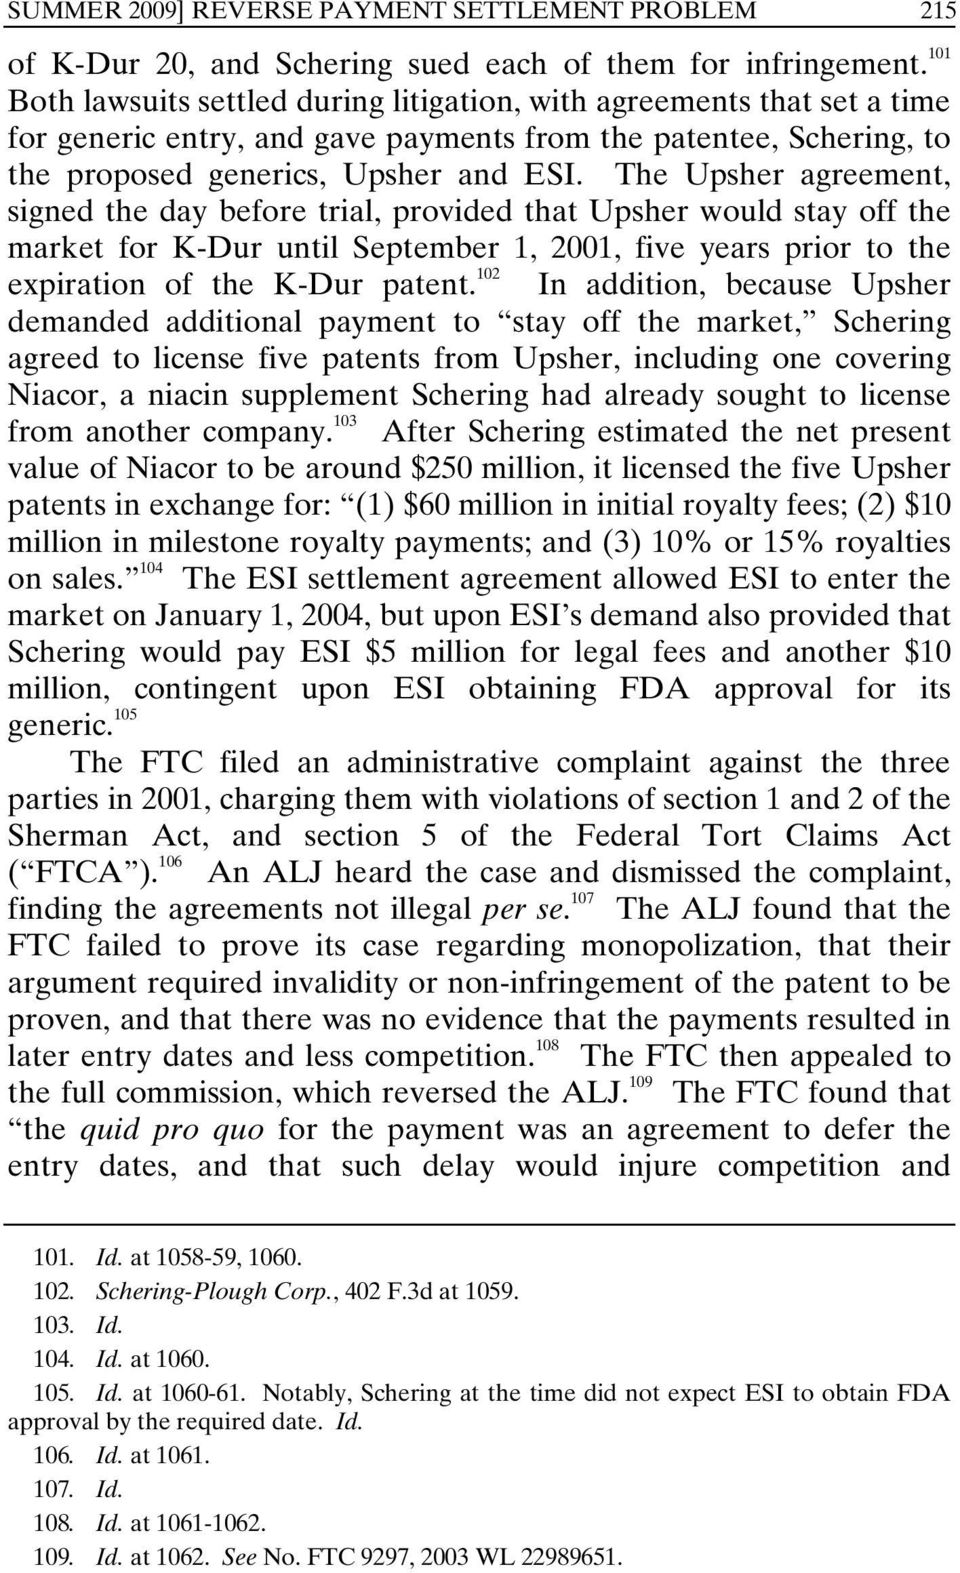 The Upsher agreement, signed the day before trial, provided that Upsher would stay off the market for K-Dur until September 1, 2001, five years prior to the expiration of the K-Dur patent.